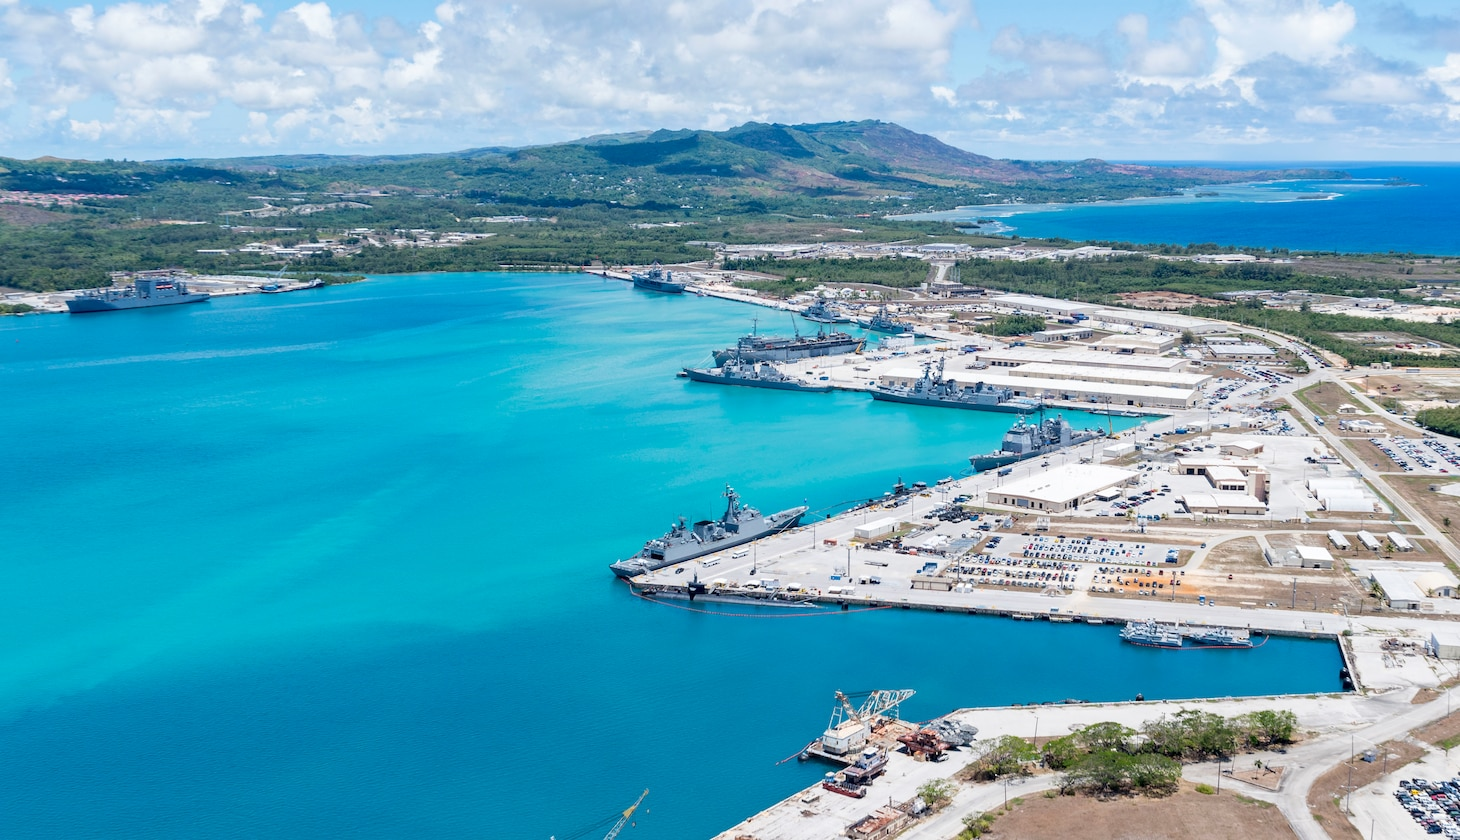 190522-N-LN093-1253  SANTA RITA, Guam (May 22, 2019) – An aerial view of U.S. Naval Base Guam shows U.S. Navy, Royal Australian Navy, Japan Maritime Self-Defense Force and the Republic of Korea Navy, vessels moored in Apra Harbor, in support of Pacific Vanguard (PACVAN), May 22. PACVAN is the first of its kind quadrilateral exercise between Australia, Japan, Republic of Korea, and U.S. Naval forces. Focused on improving the capabilities of participating countries to respond together to crisis and contingencies in the region, PACVAN prepares the participating maritime forces to operate as an integrated, capable, and potent allied force ready to respond to a complex maritime environment in the Indo-Pacific region.